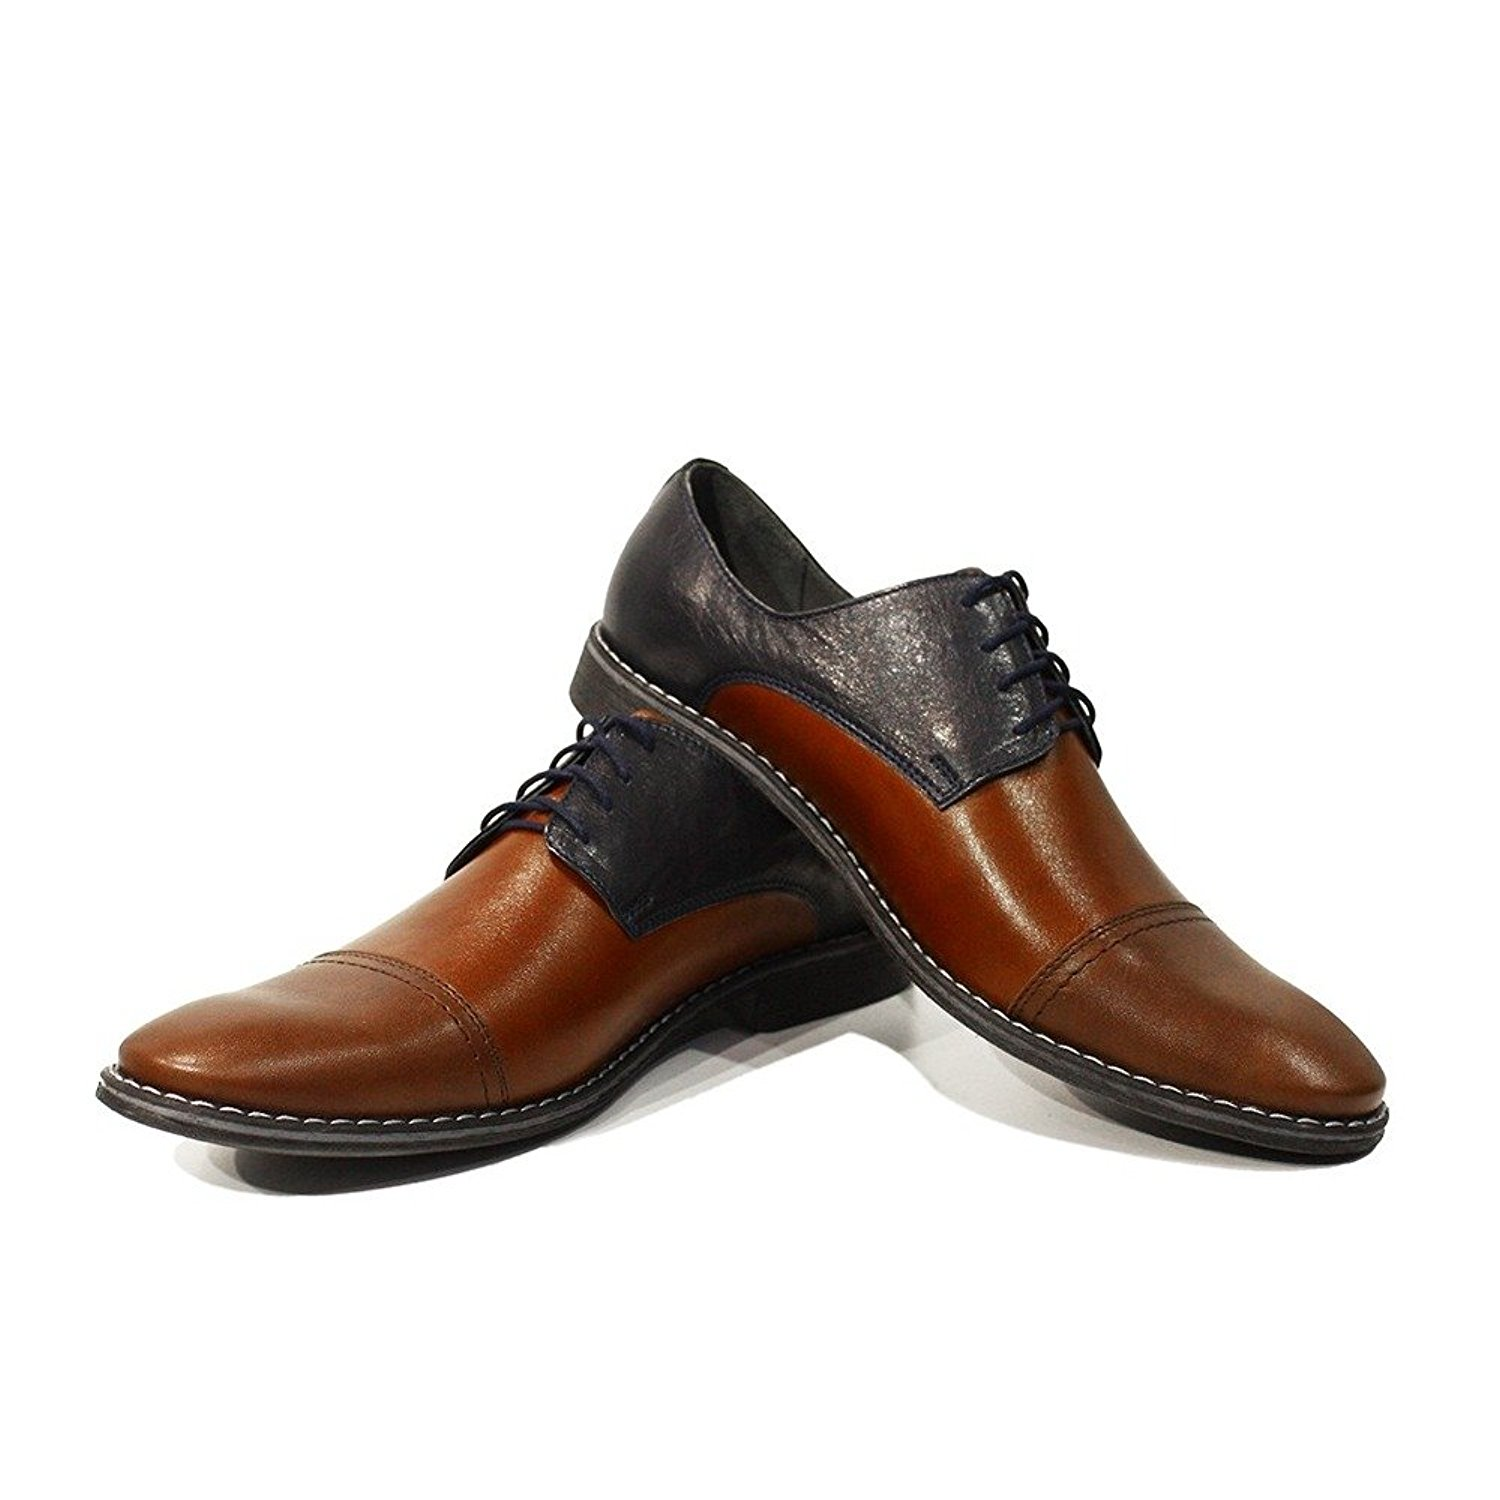 Modello Mario - Handmade Italian Mens Brown Oxfords Dress Shoes - Cowhide Smooth Leather - Lace-up